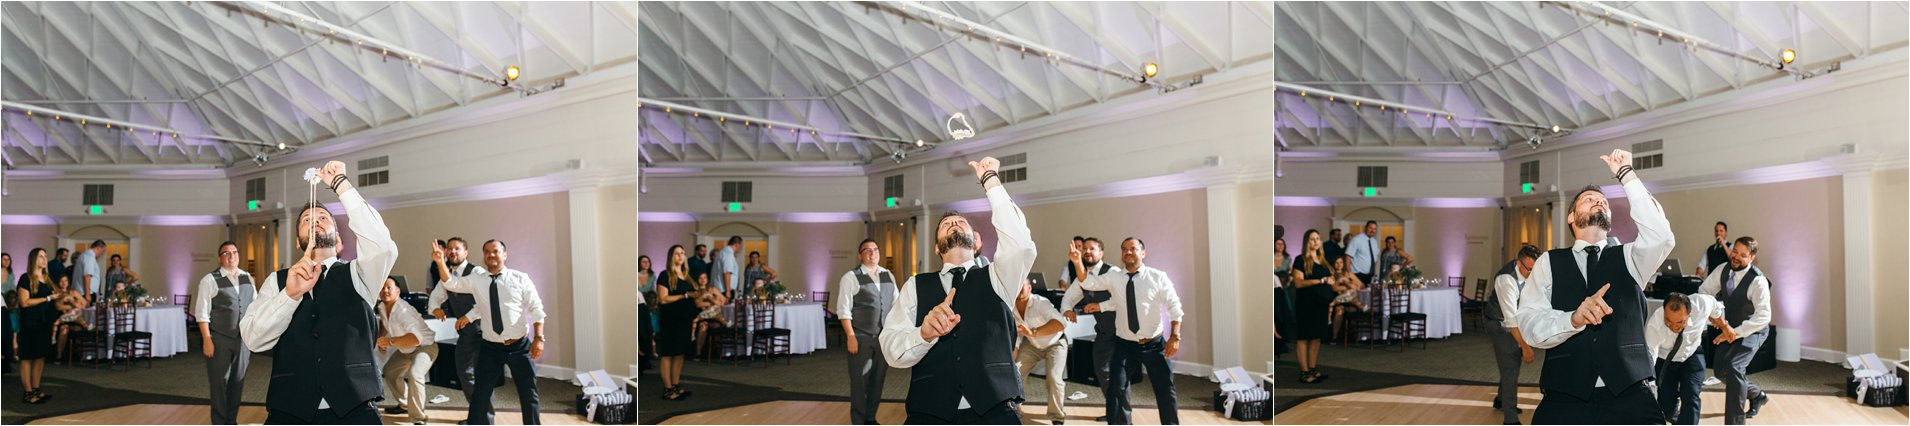 Orange County Wedding - Garter Toss